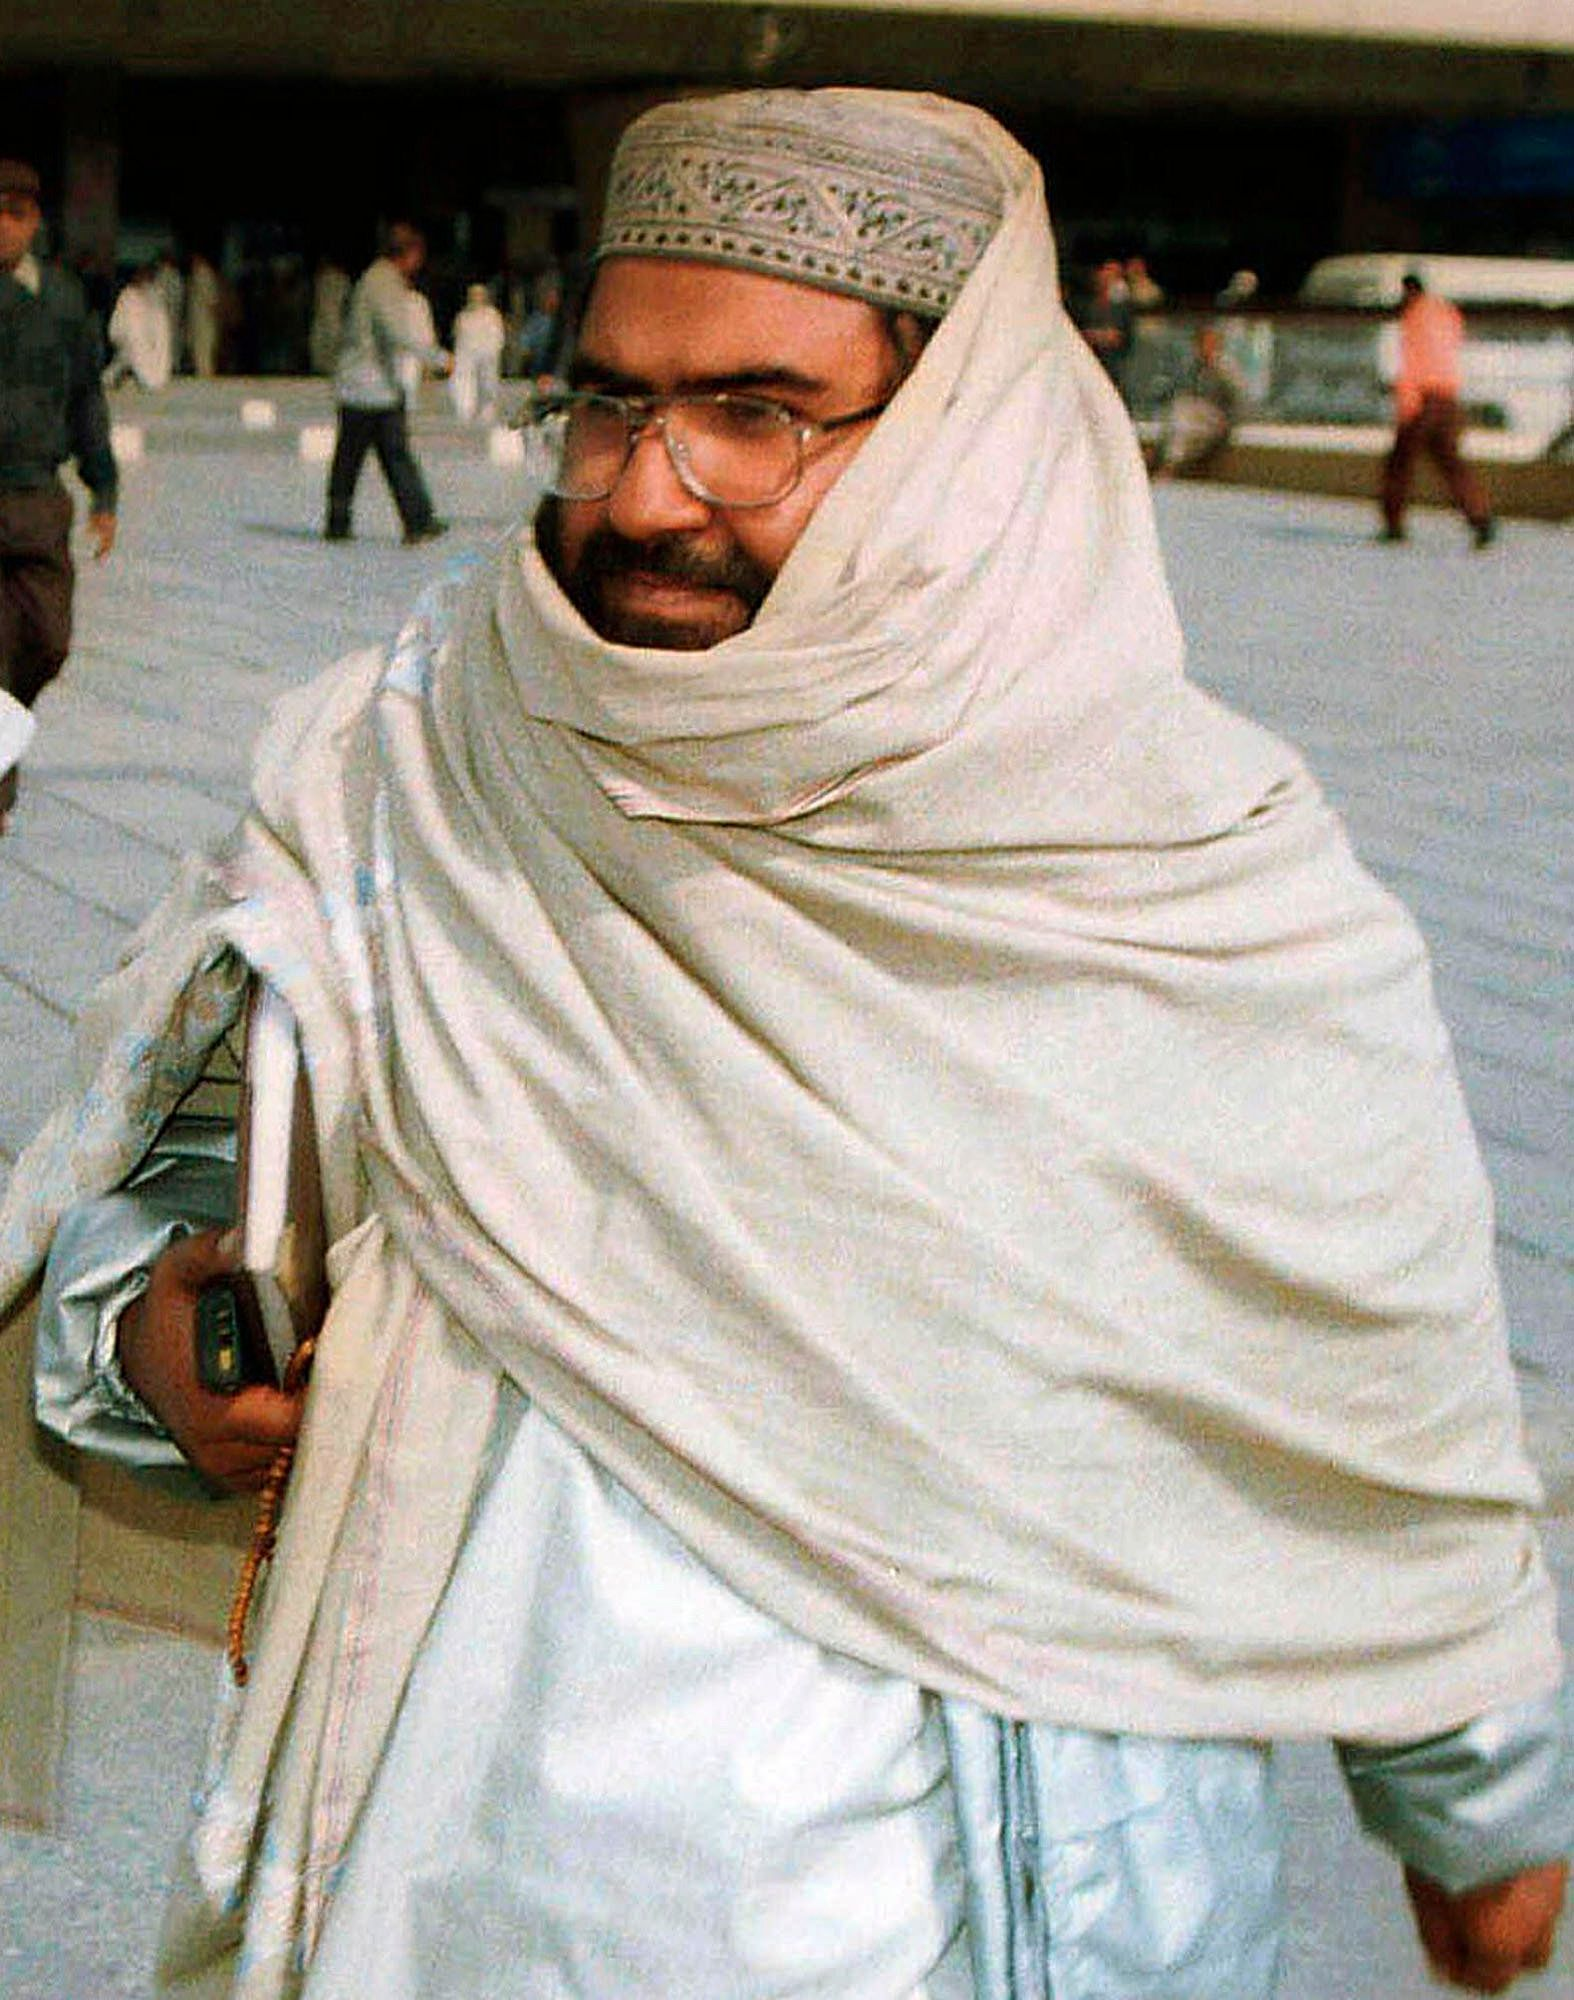 Will The Blacklisting Of Masood Azhar Be An Electoral Boost For